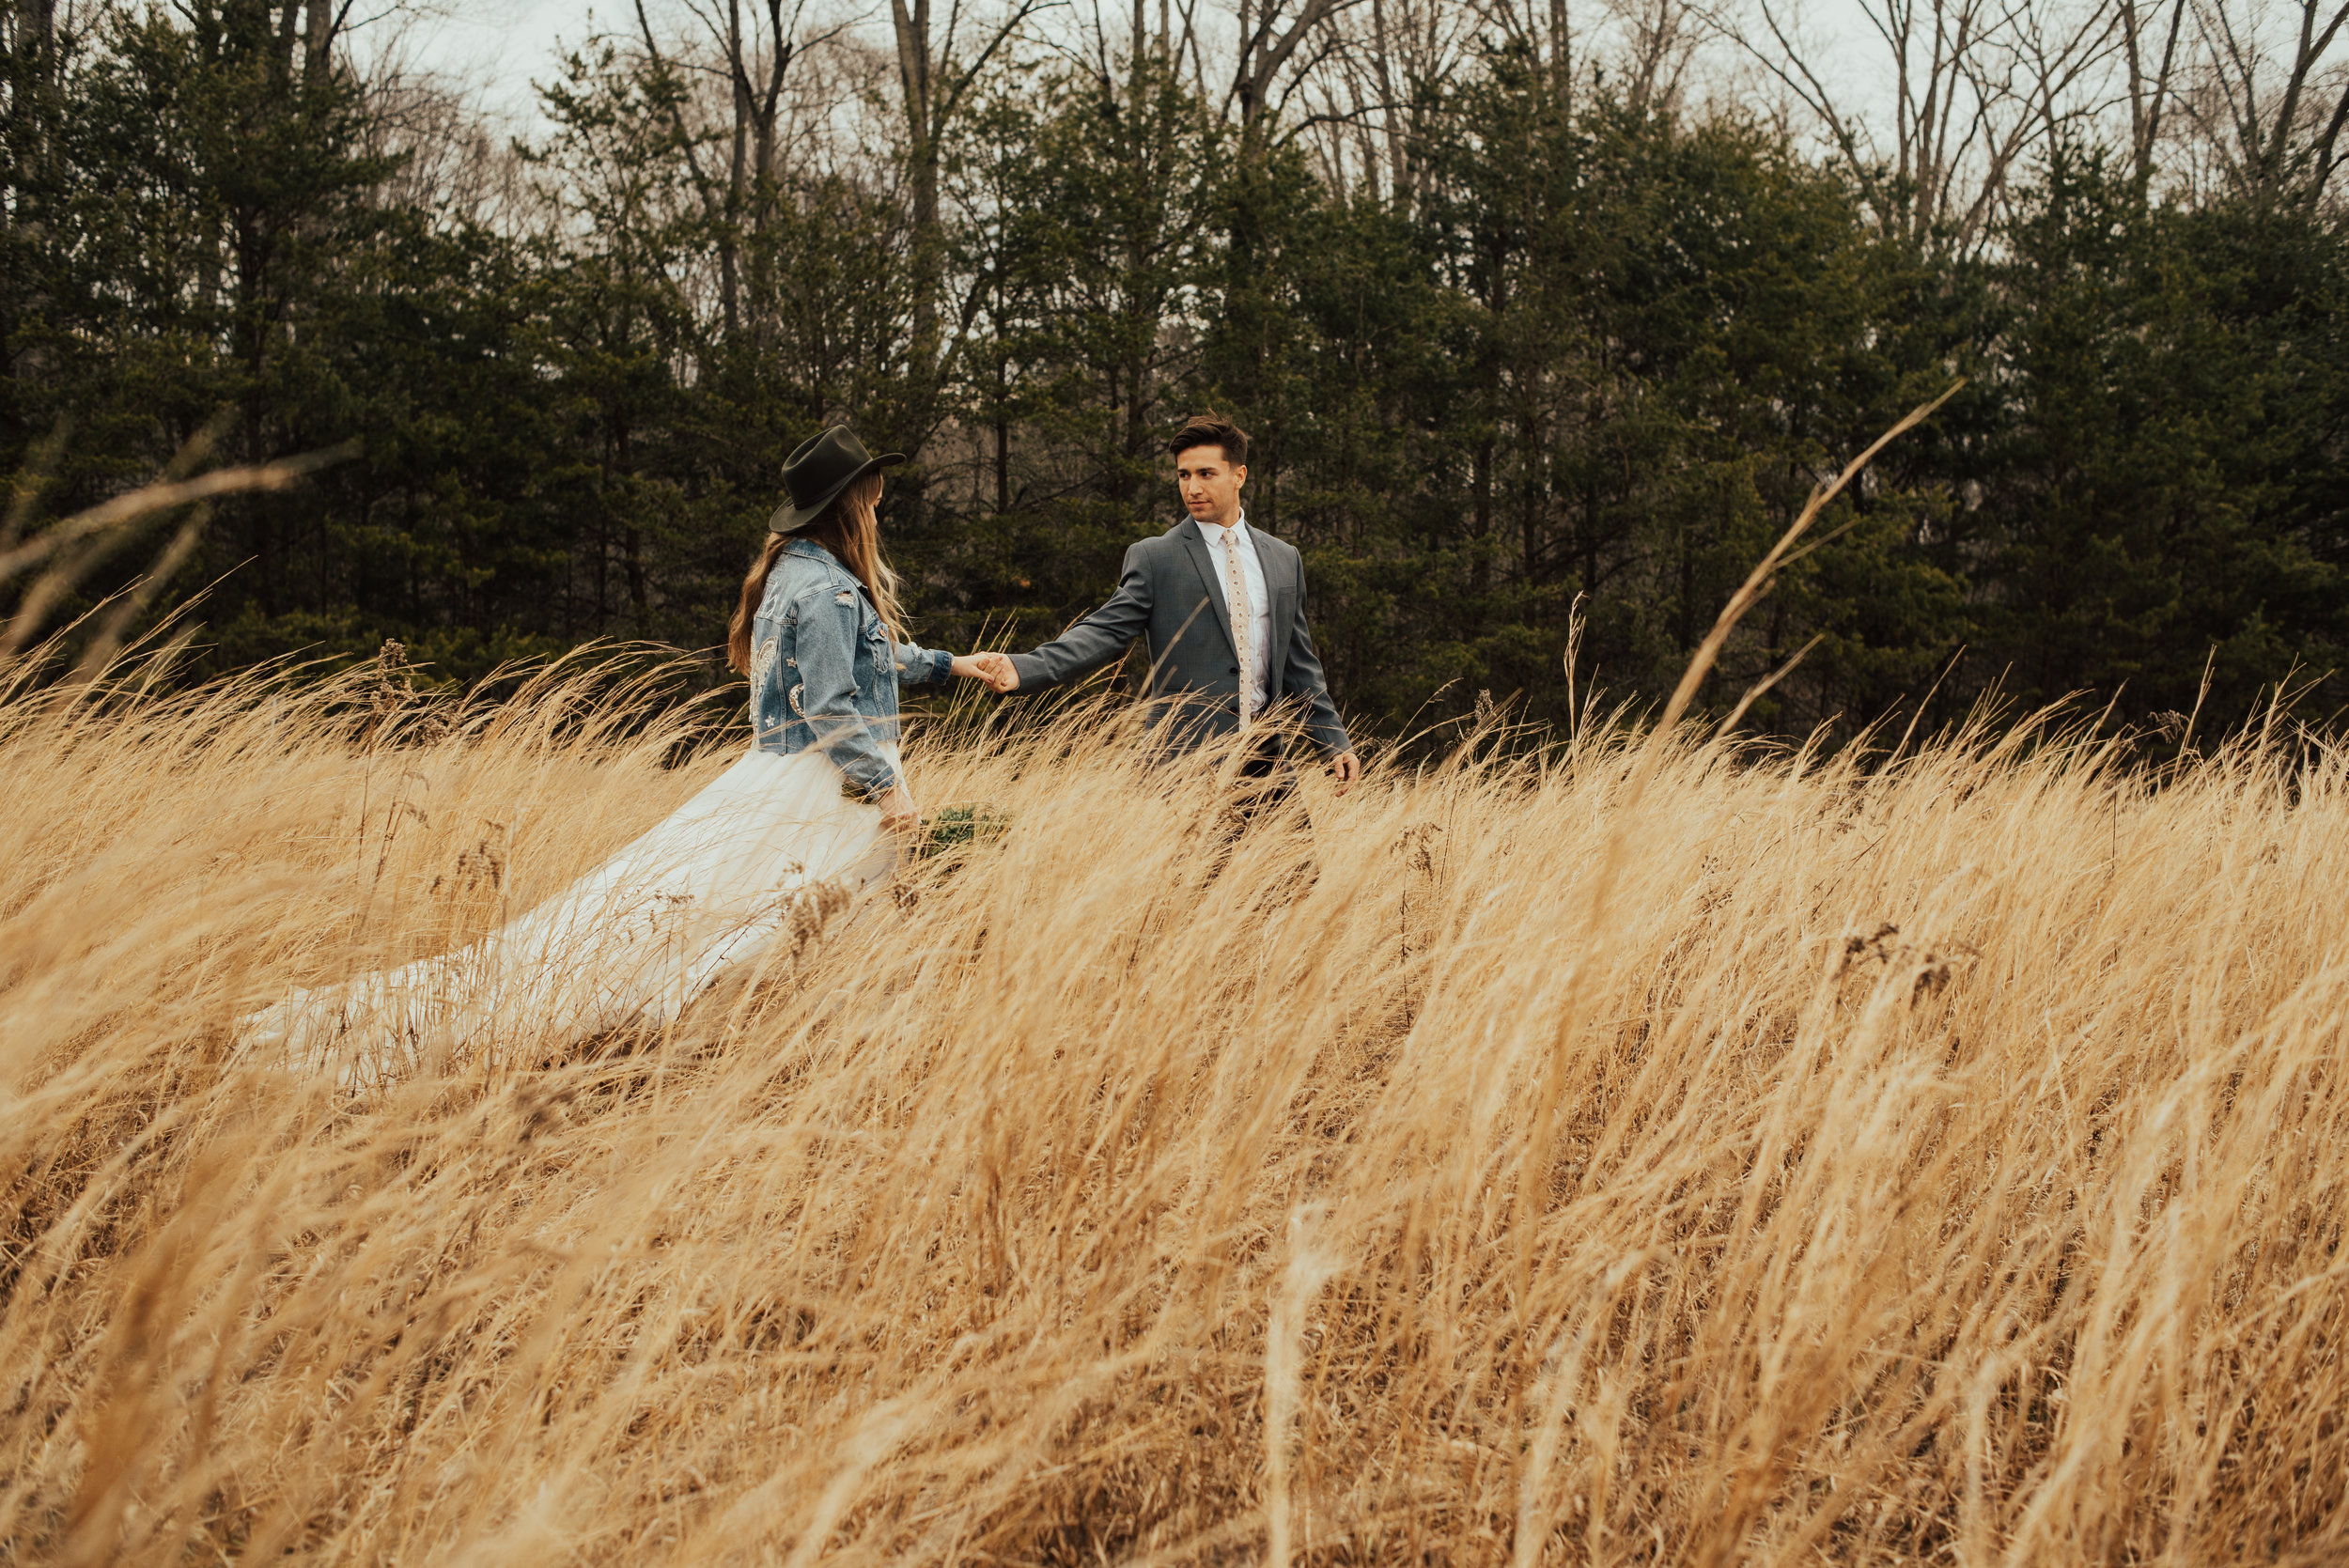 Virginia Mountain Elopement by SB Photographs01101001000111001110110110100100100001101001DSC_4874DSC_48740001101.jpg